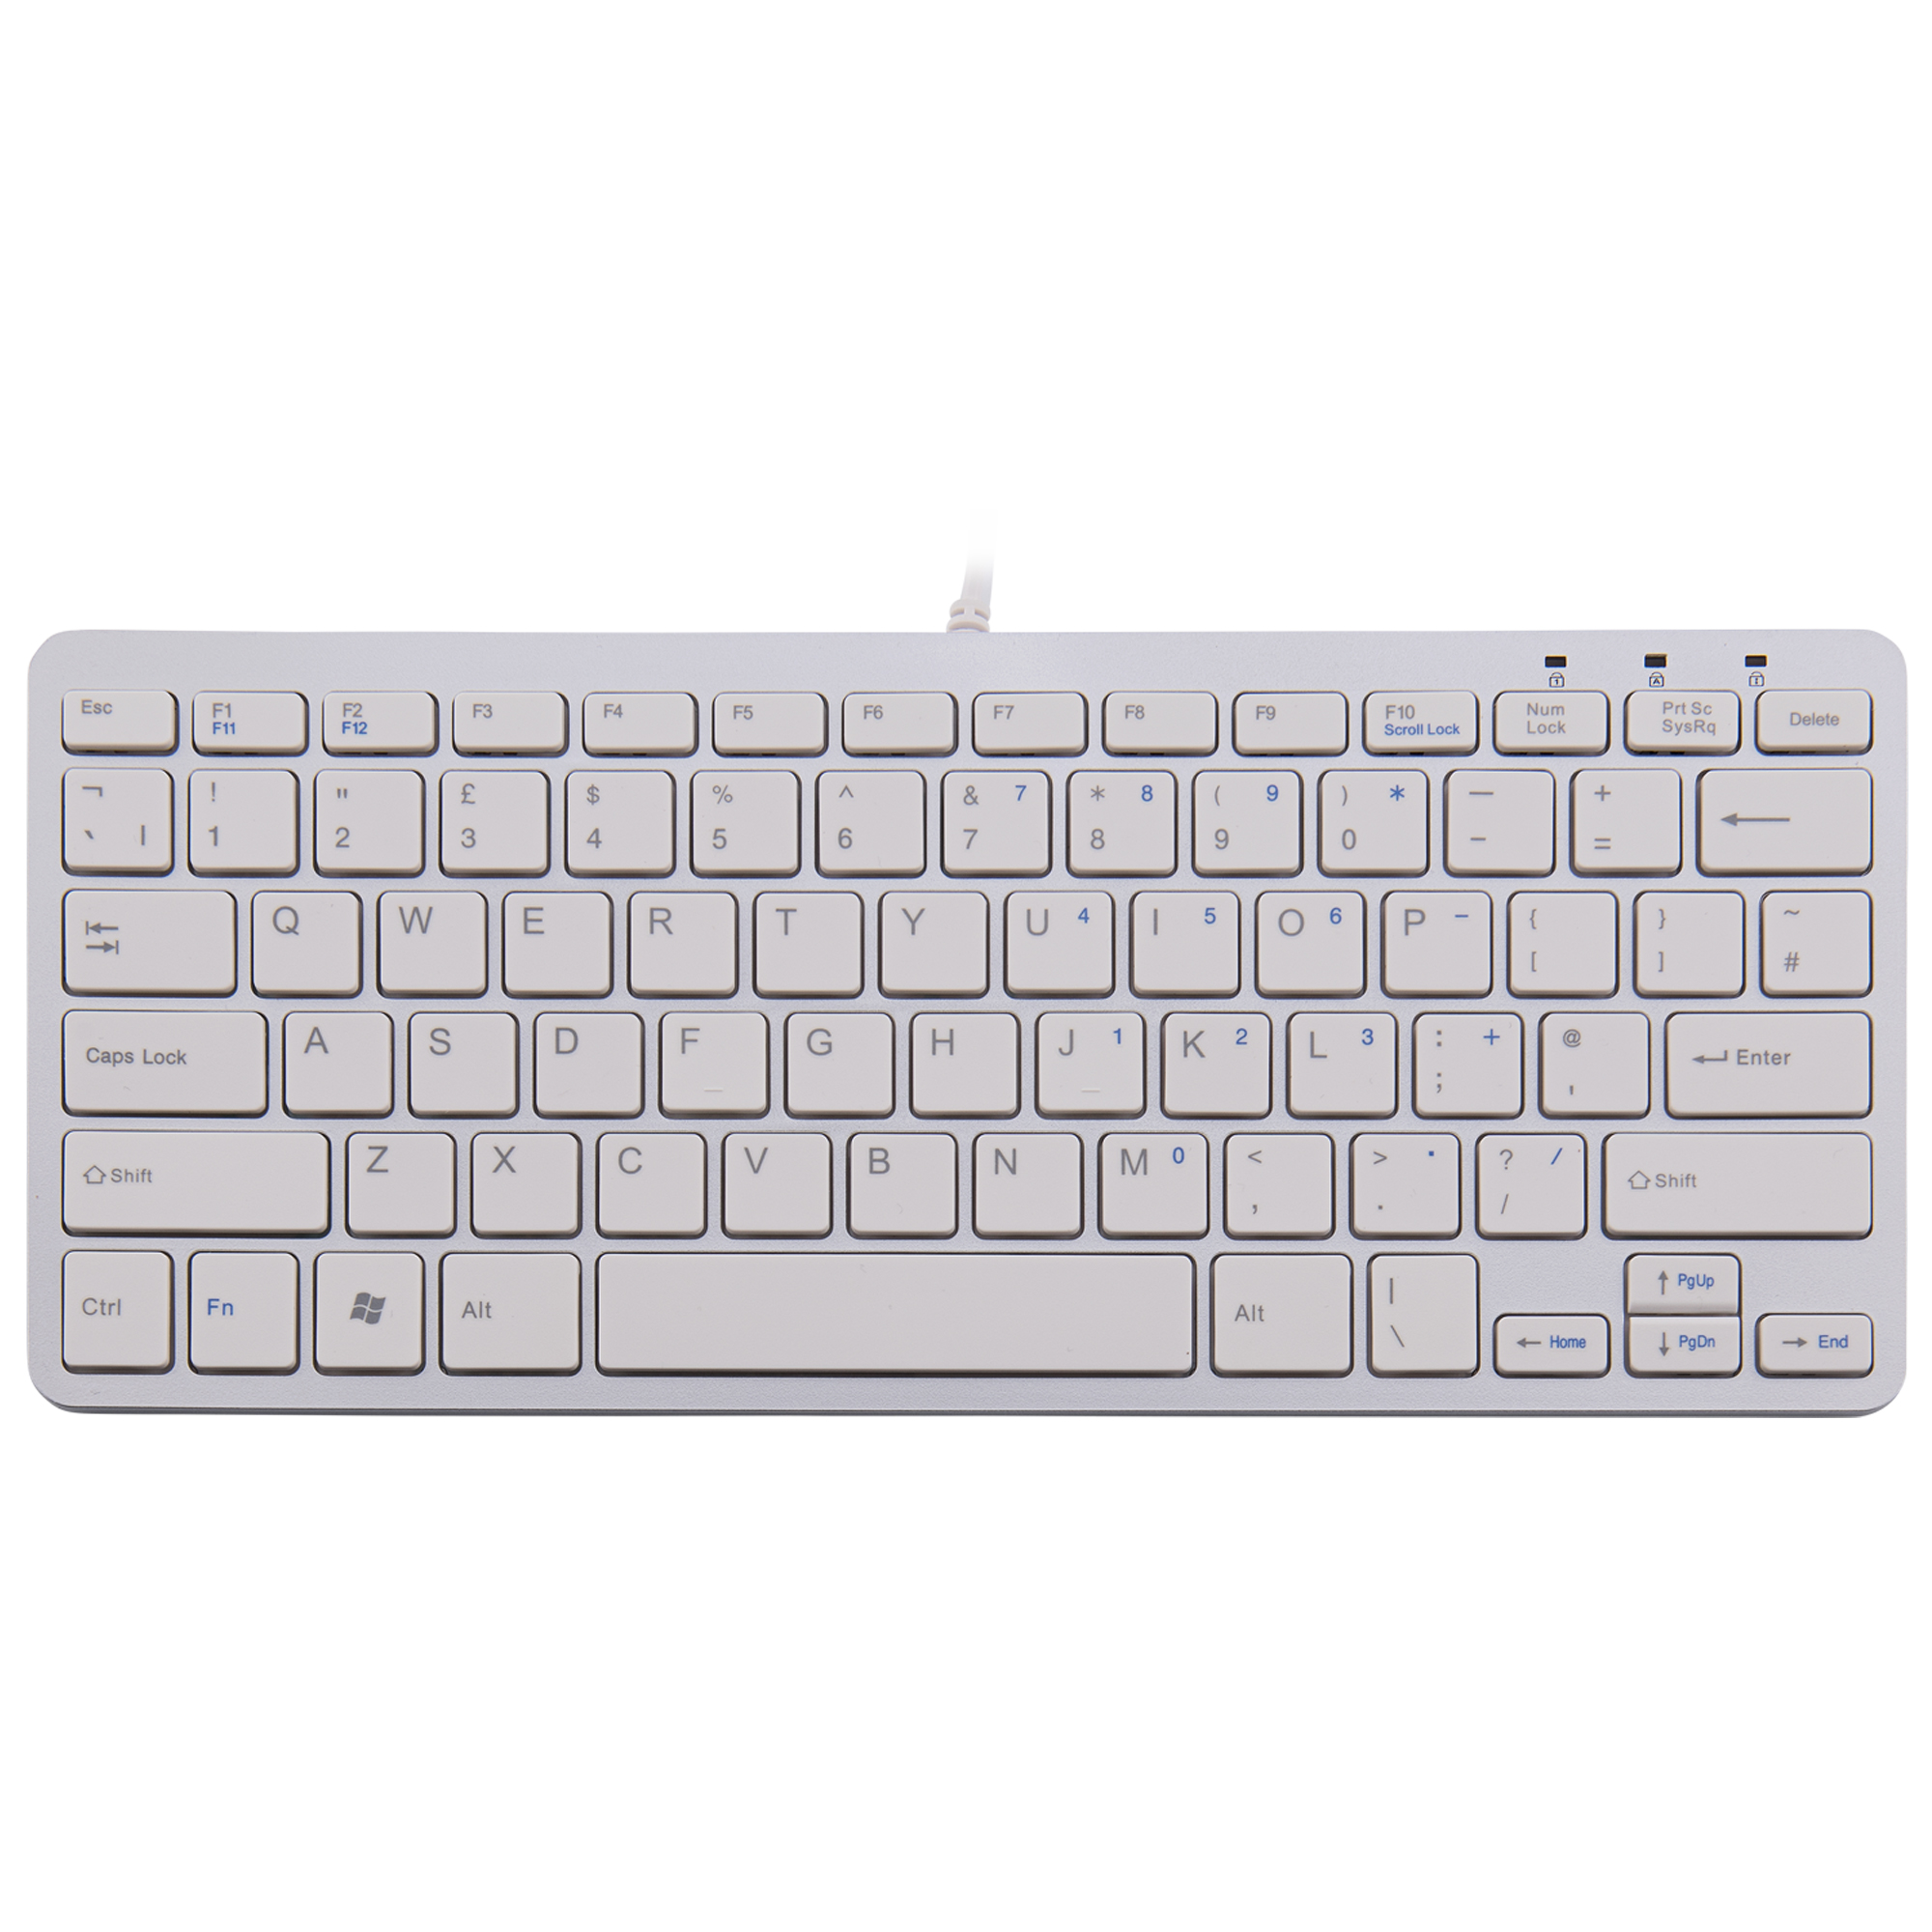 R-Go Clavier Compact, QWERTY (UK), blanc, filaire - 1